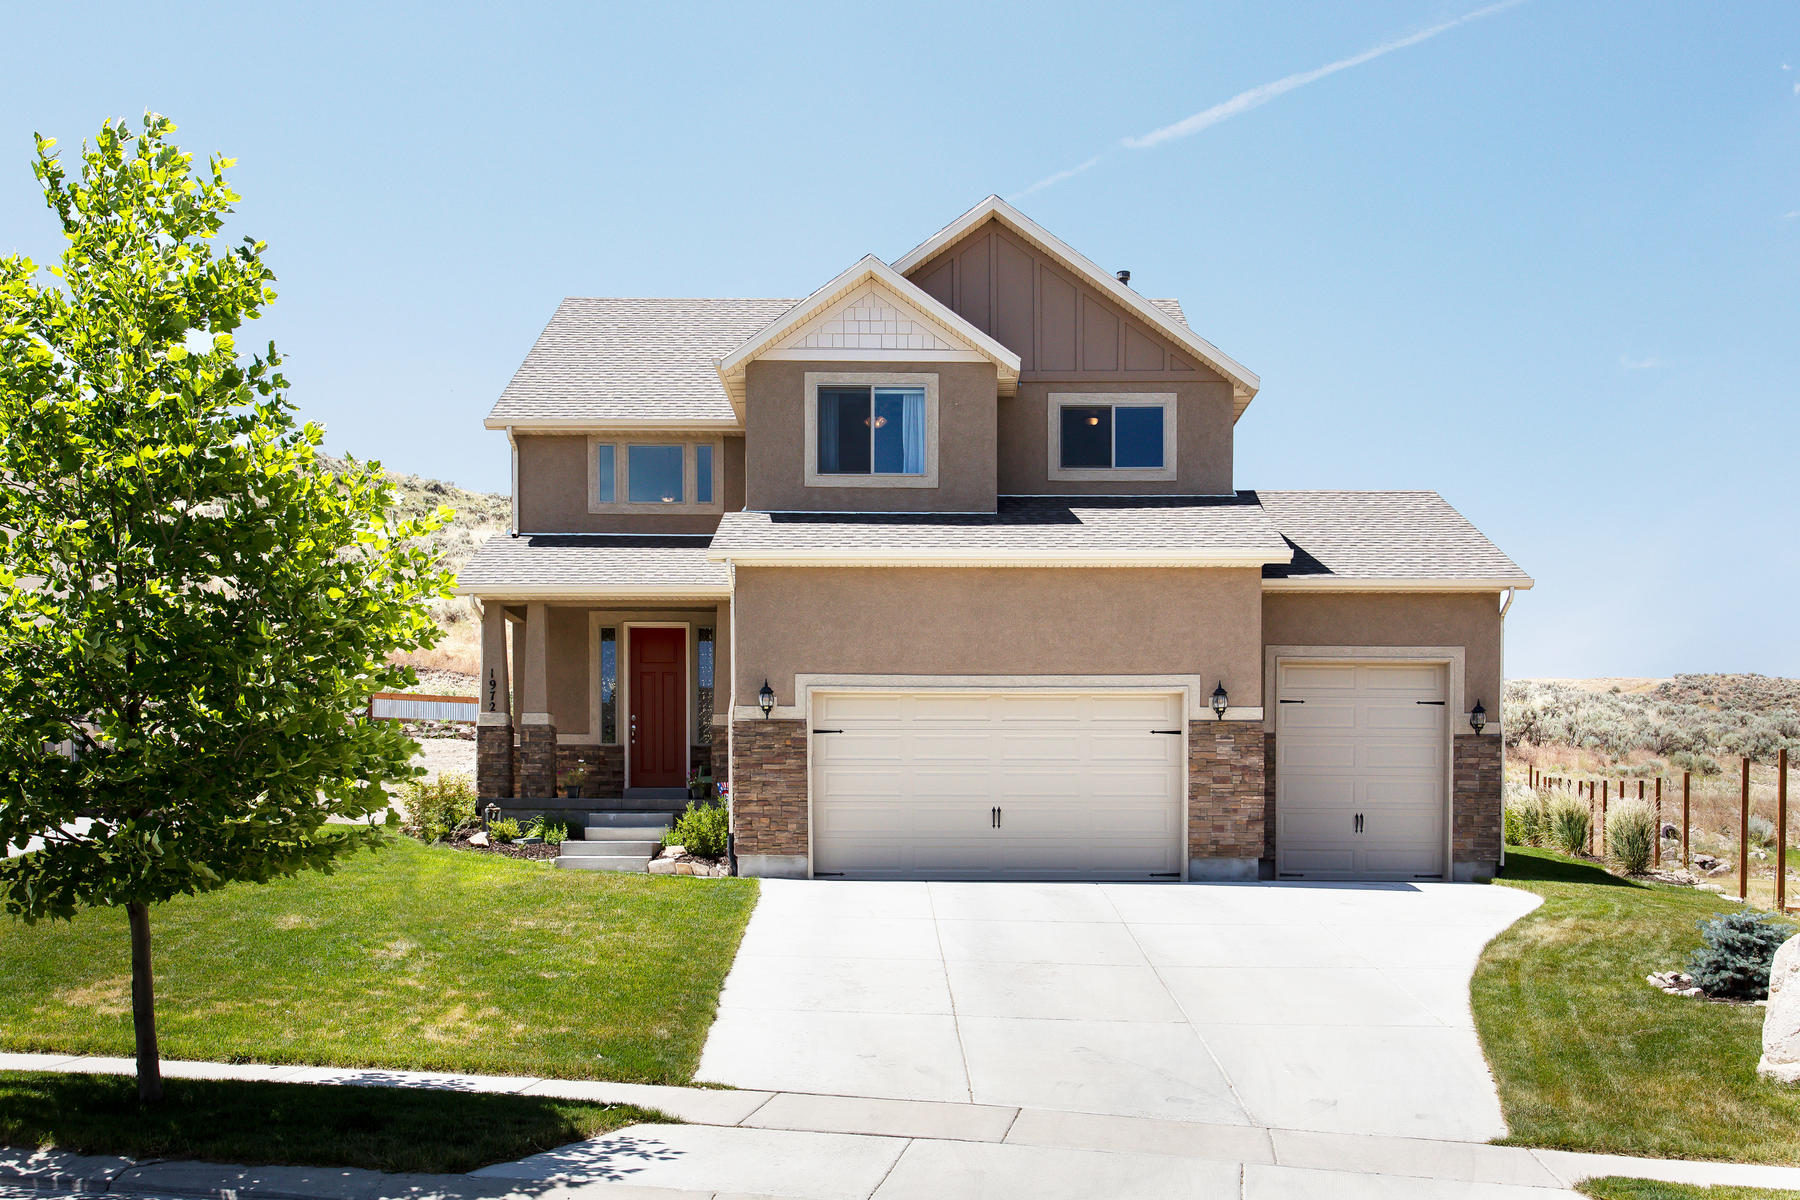 Single Family Homes for Active at Well Maintained Home Is Move In Ready 1972 E Pine Cone Rd Eagle Mountain, Utah 84005 United States